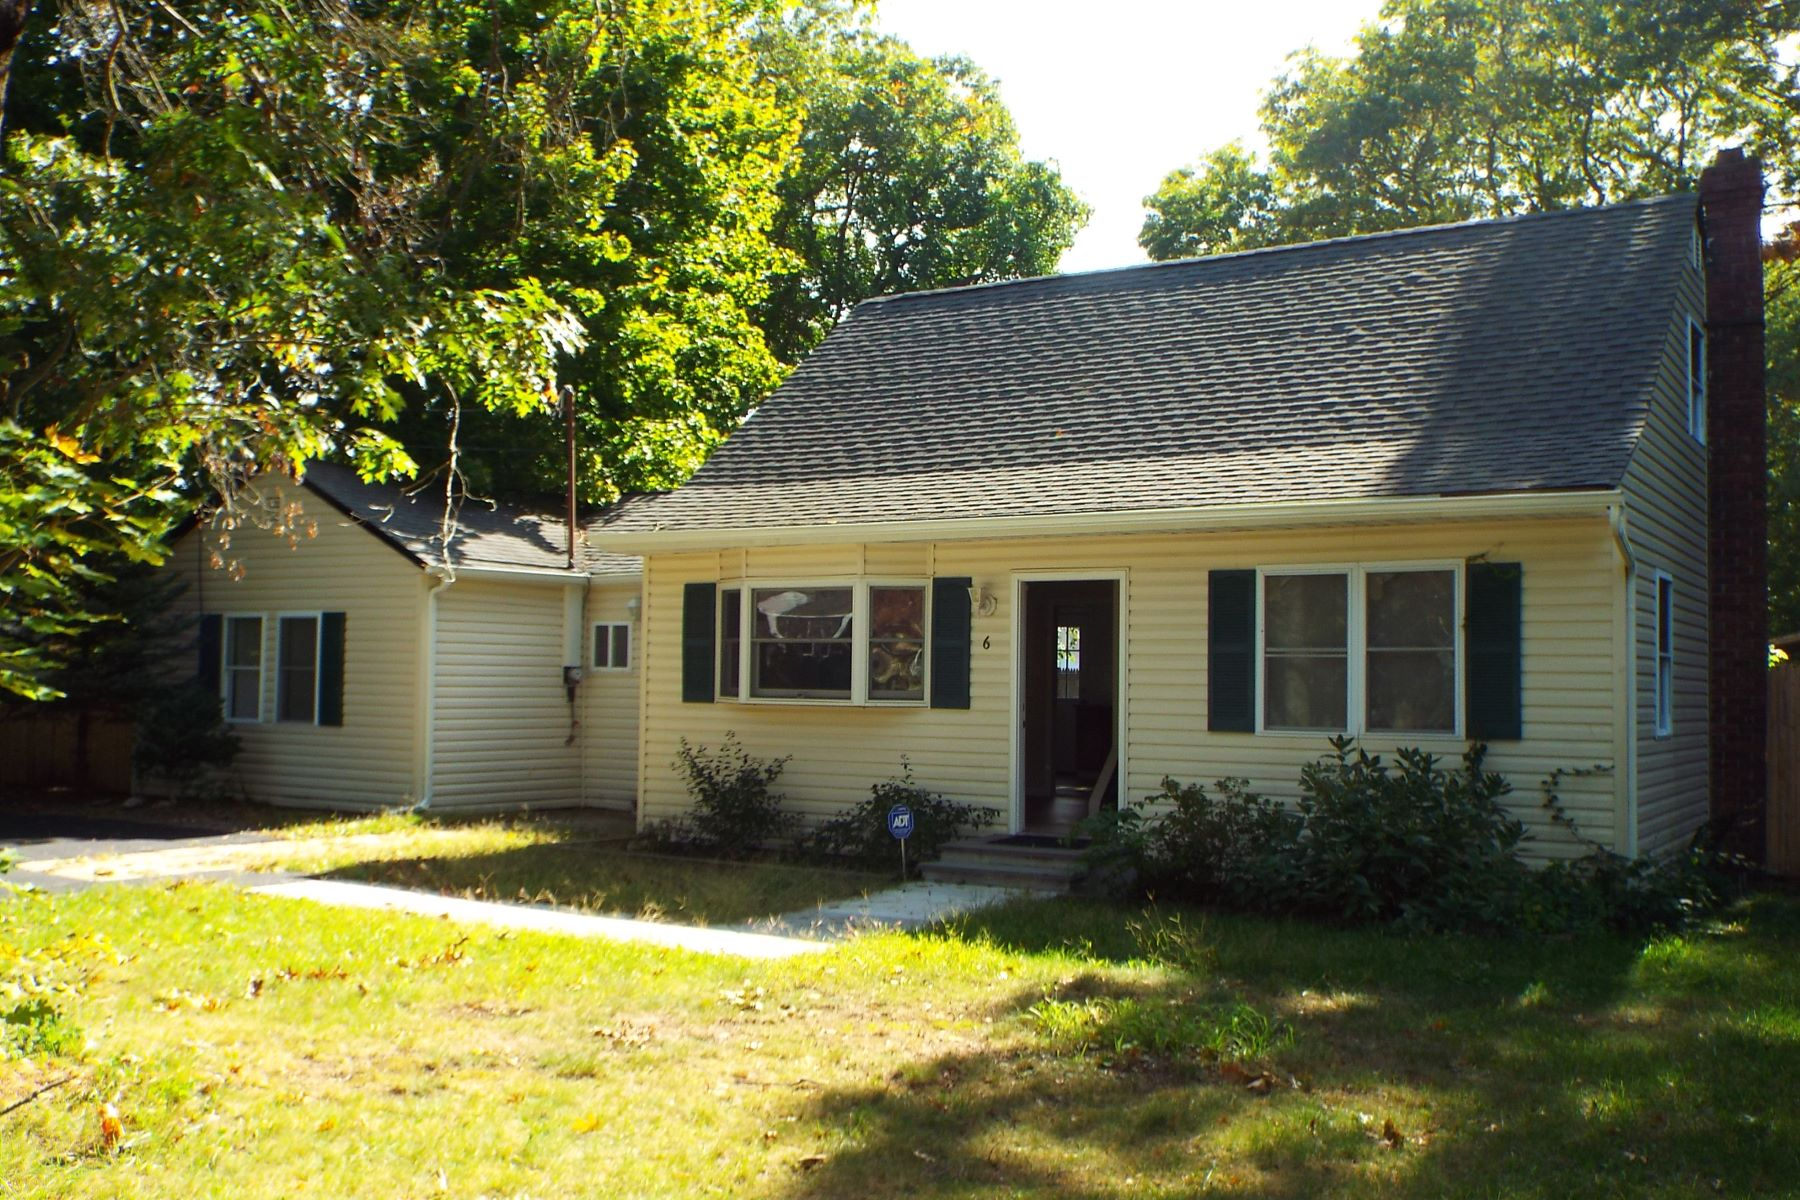 Single Family Home for Sale at Totally Renovated Cape 6 Elm Pl Mastic, New York 11950 United States